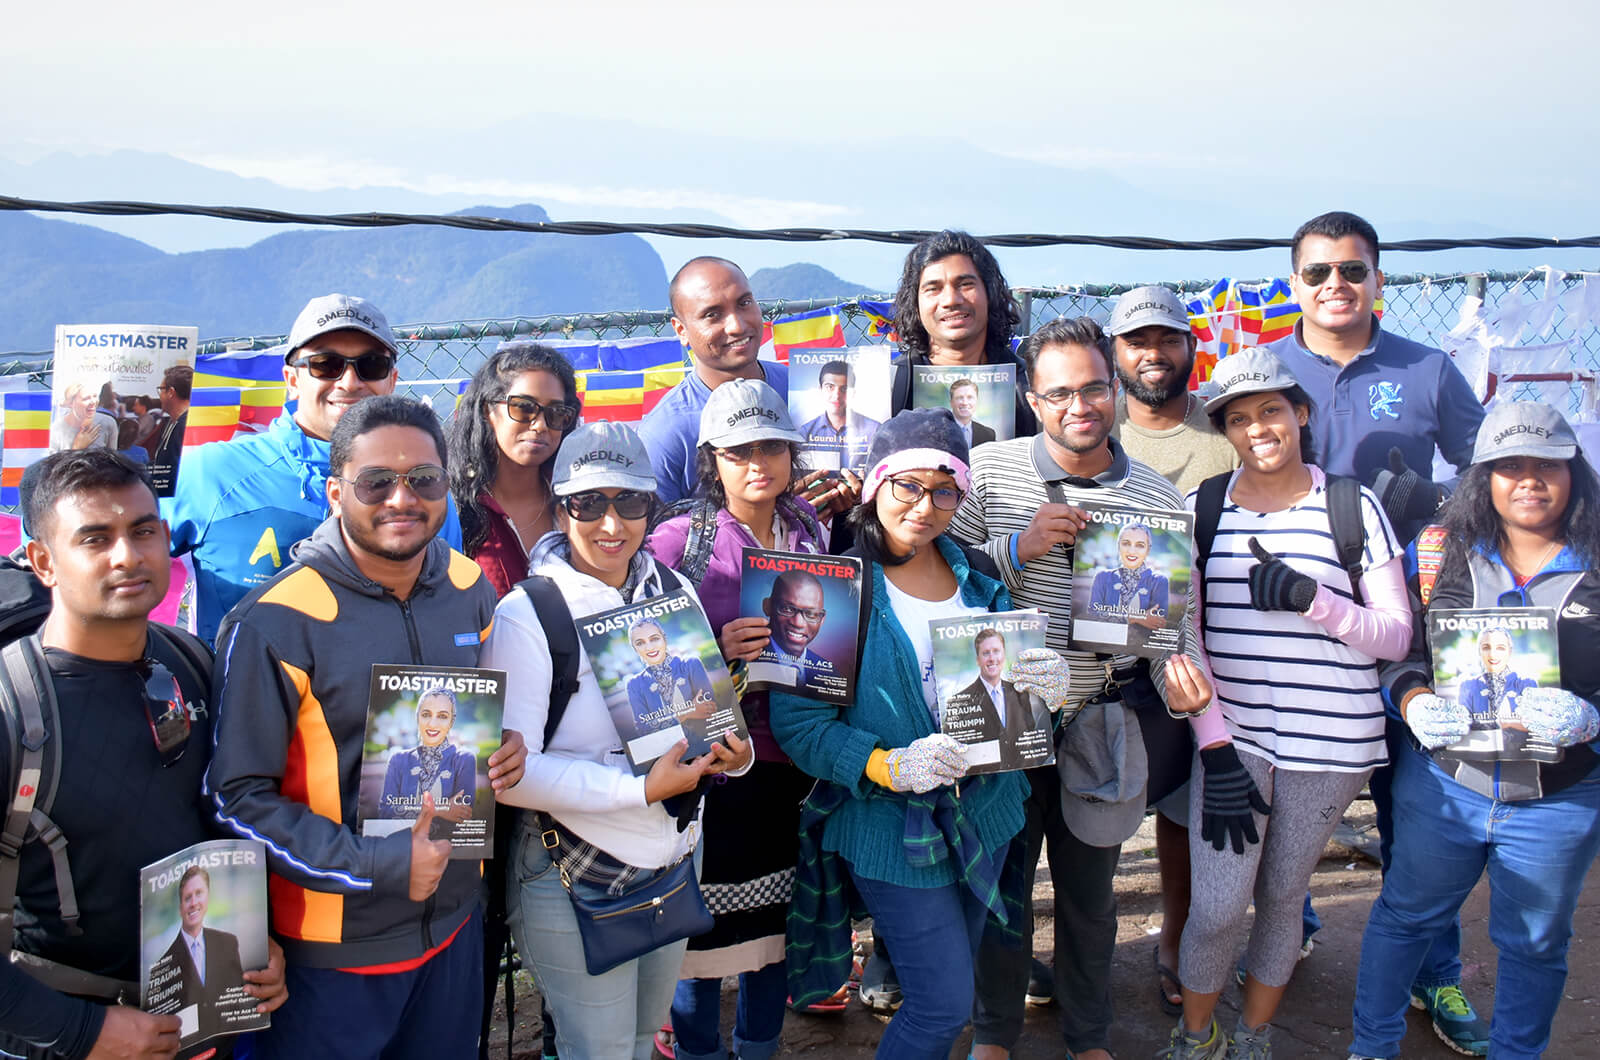 Members of Smedley Toastmasters club in Kalubowila, Dehiwala-Mount Lavinia, Sri Lanka, celebrate their 14th anniversary on the 2,243-meter/7,359-foot Mount Sri Pada (also known as Adam's Peak) in Sabaragamuwa Province.